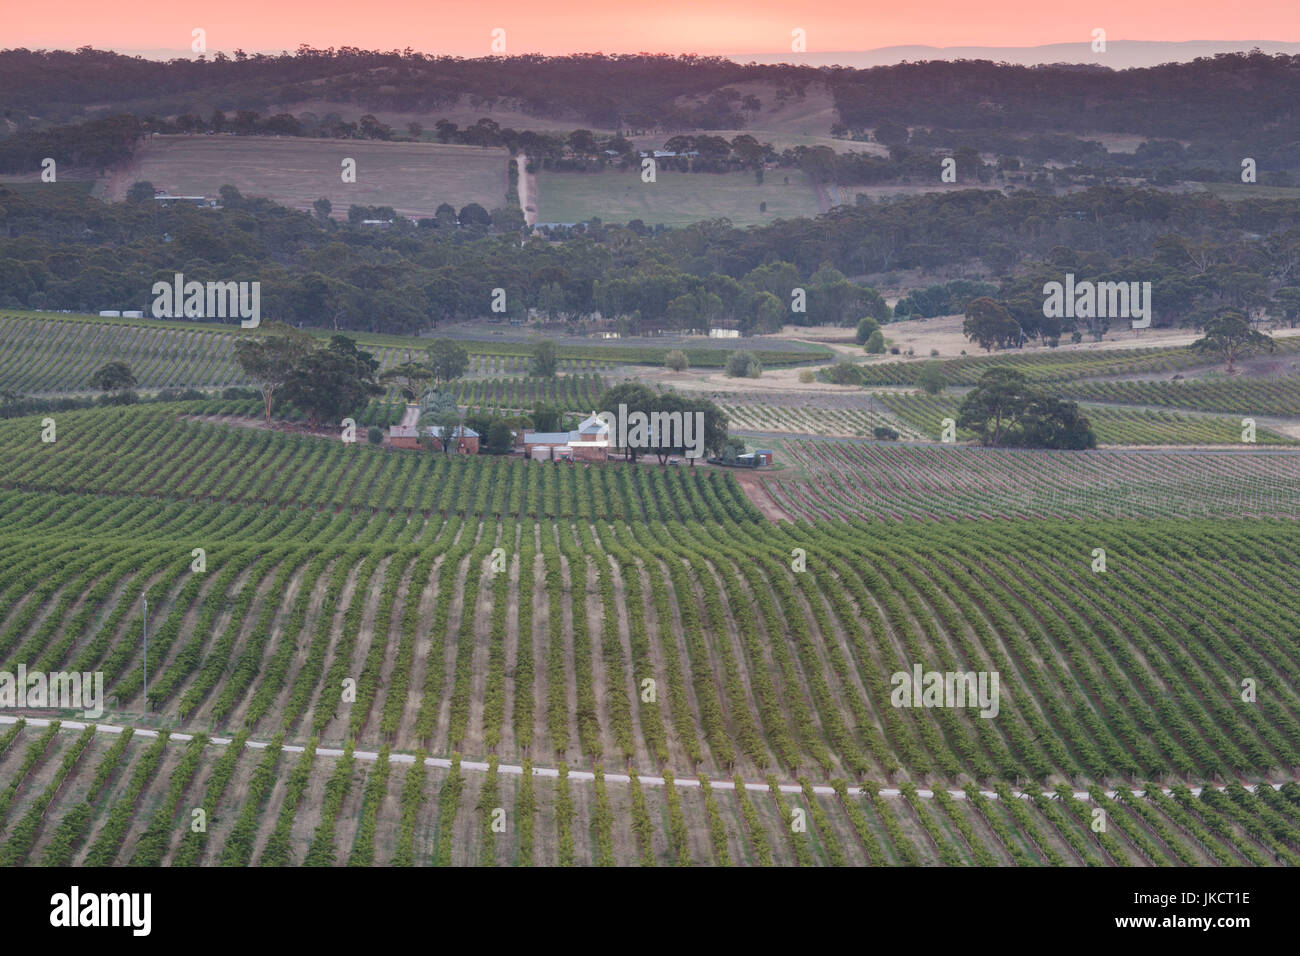 Australia, South Australia, Clare Valley, Clare, elevated view of vineyards from Quarry Hill, late afternoon - Stock Image